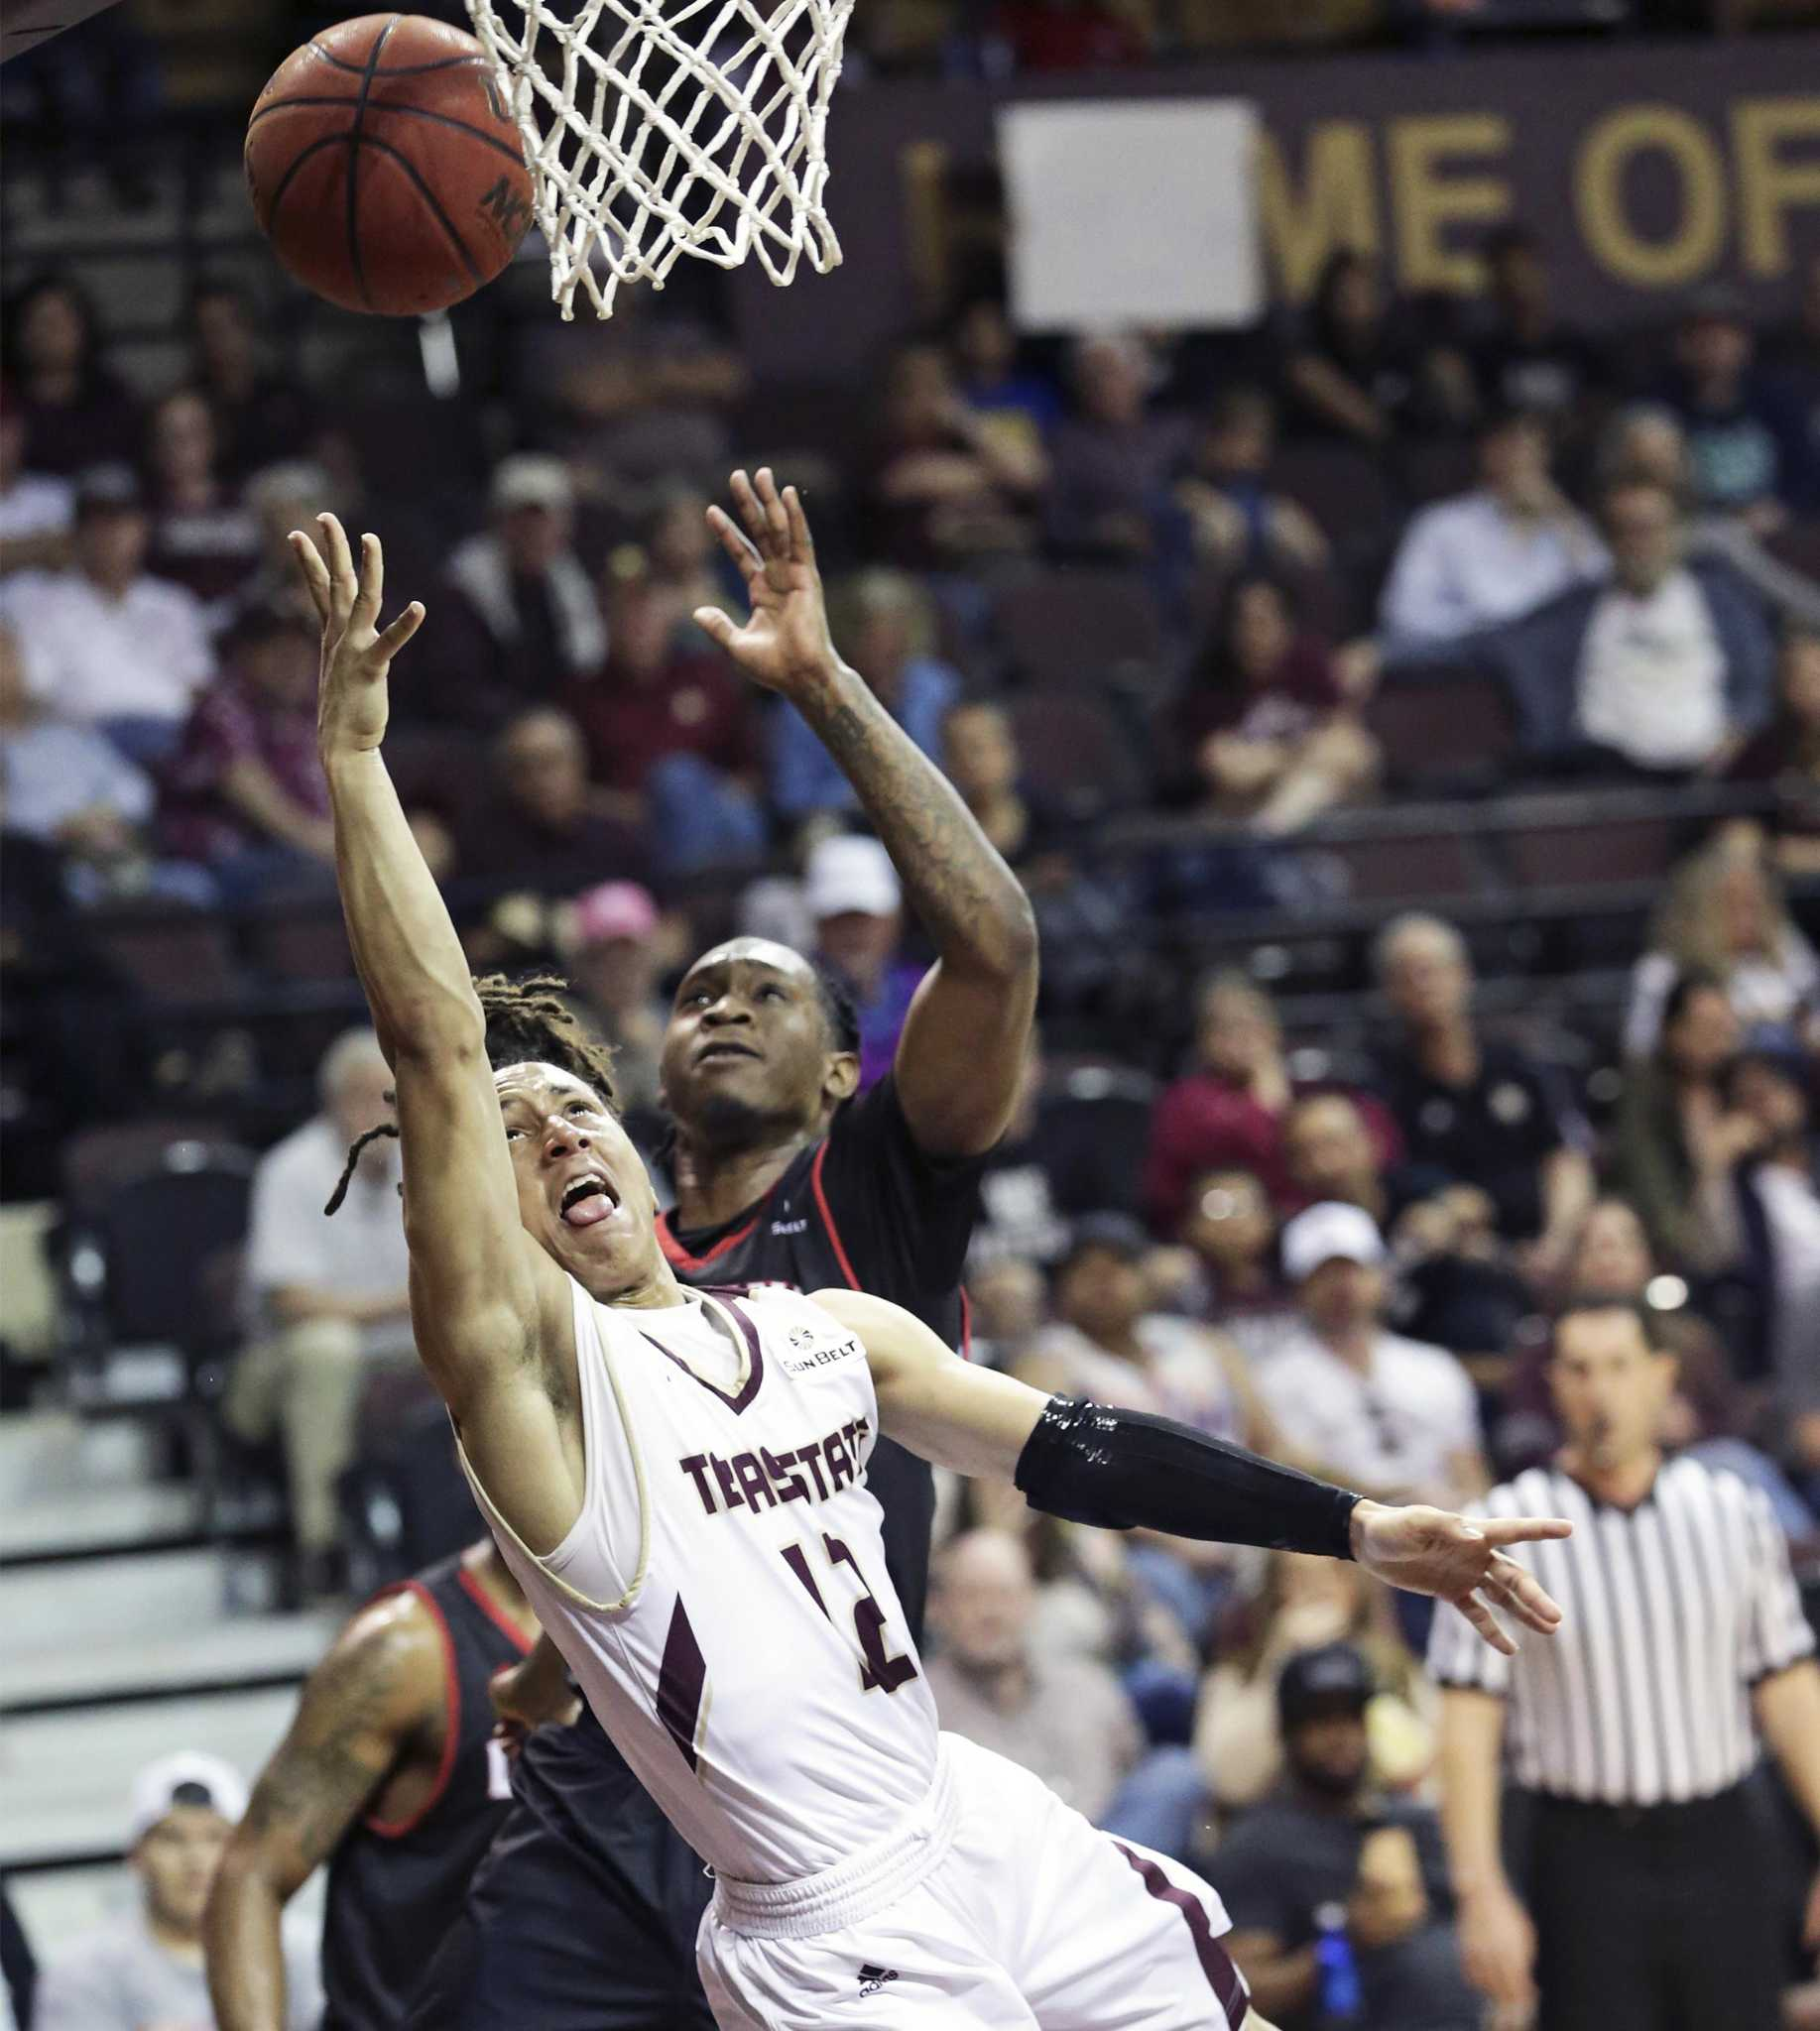 Texas State struggles offensively in Sun Belt semifinal loss